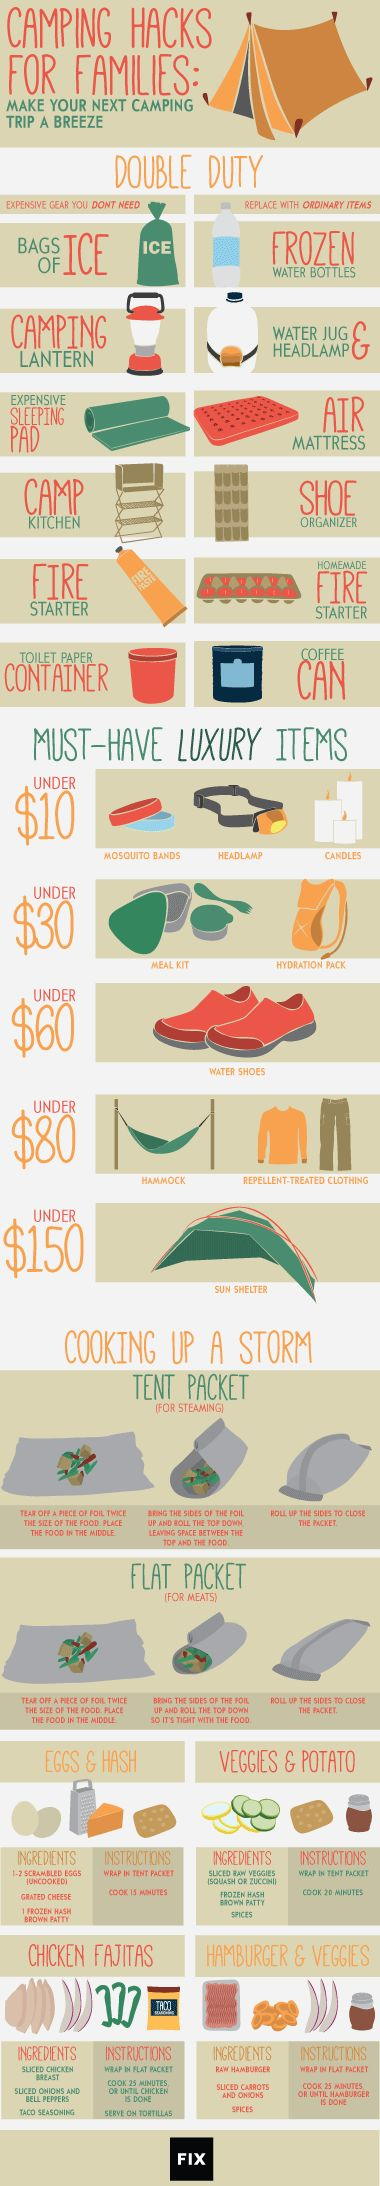 Love these Camping Hacks For Families from Fix.com by @amywhitley